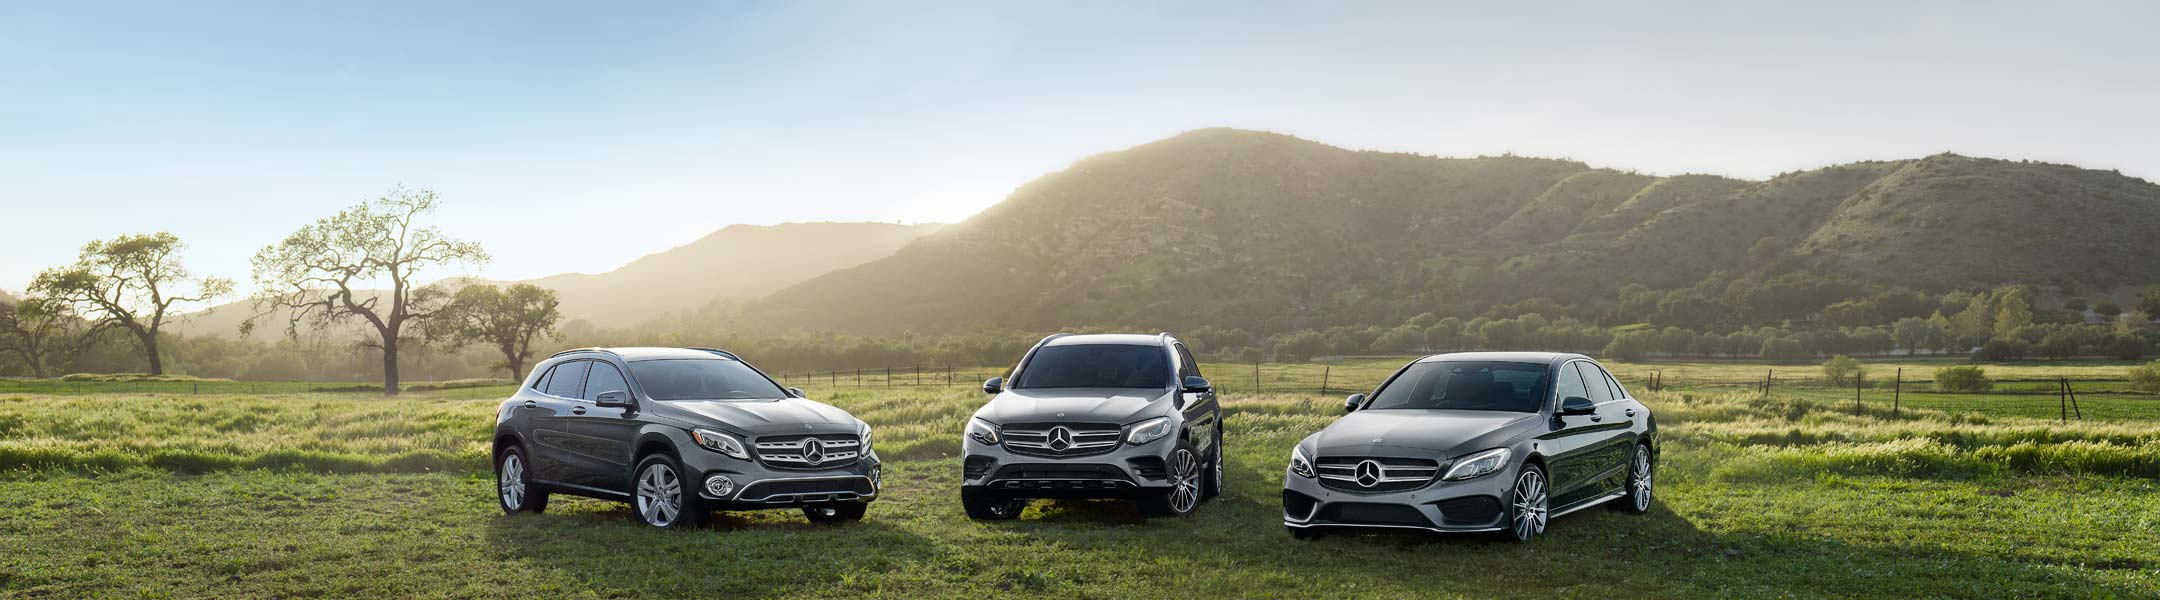 Special offers mercedes benz usa for Mercedes benz offers usa